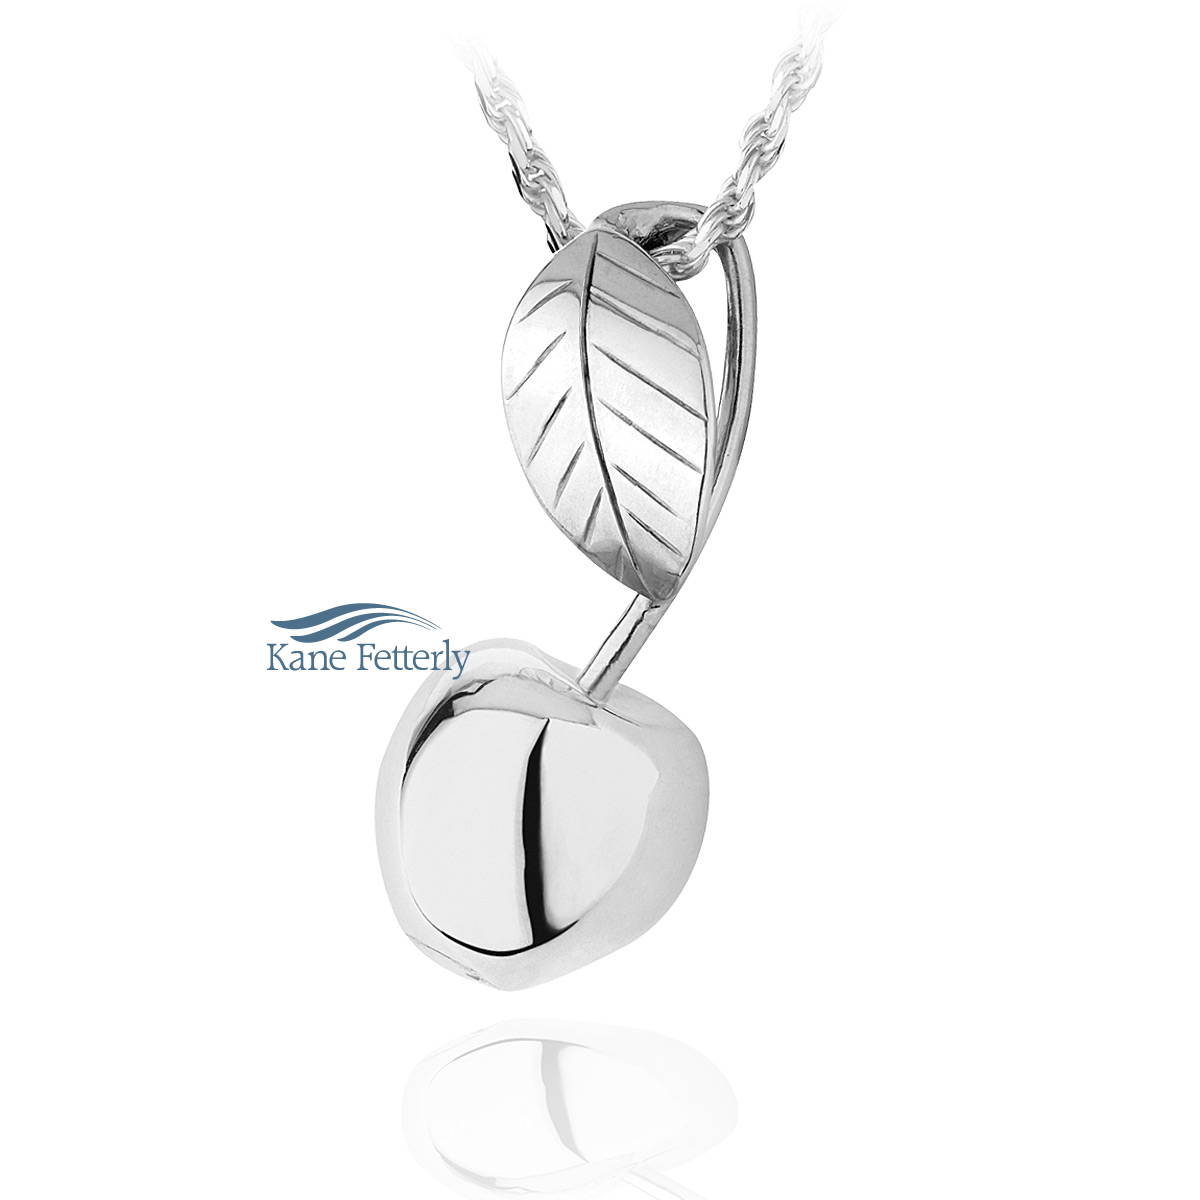 J0156 Cherry pendant in sterling silver